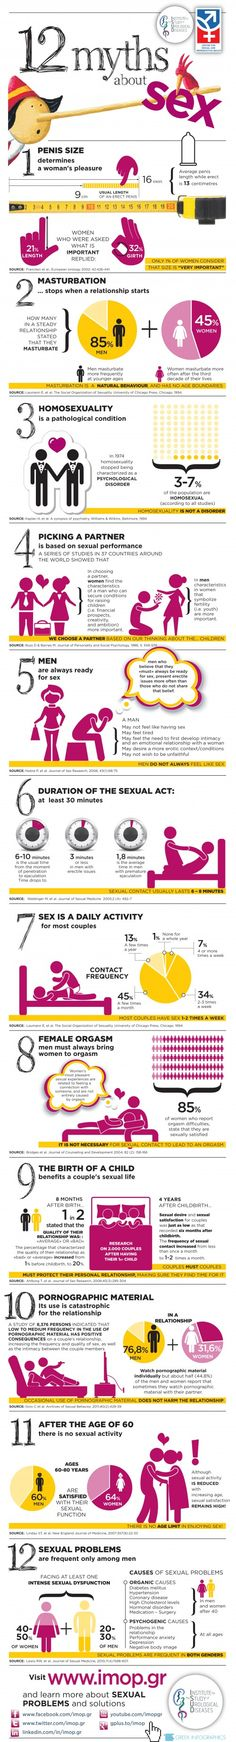 12 Myths about Sex  @ SexyforLove.com Erotic sexy adult pleasure store. Sextoys gifts clothes men woman leather lingerie clubwear fetish bondage BDSM costumes vibrators dildos rings masturbators shop sale www.sexyforlove.com.